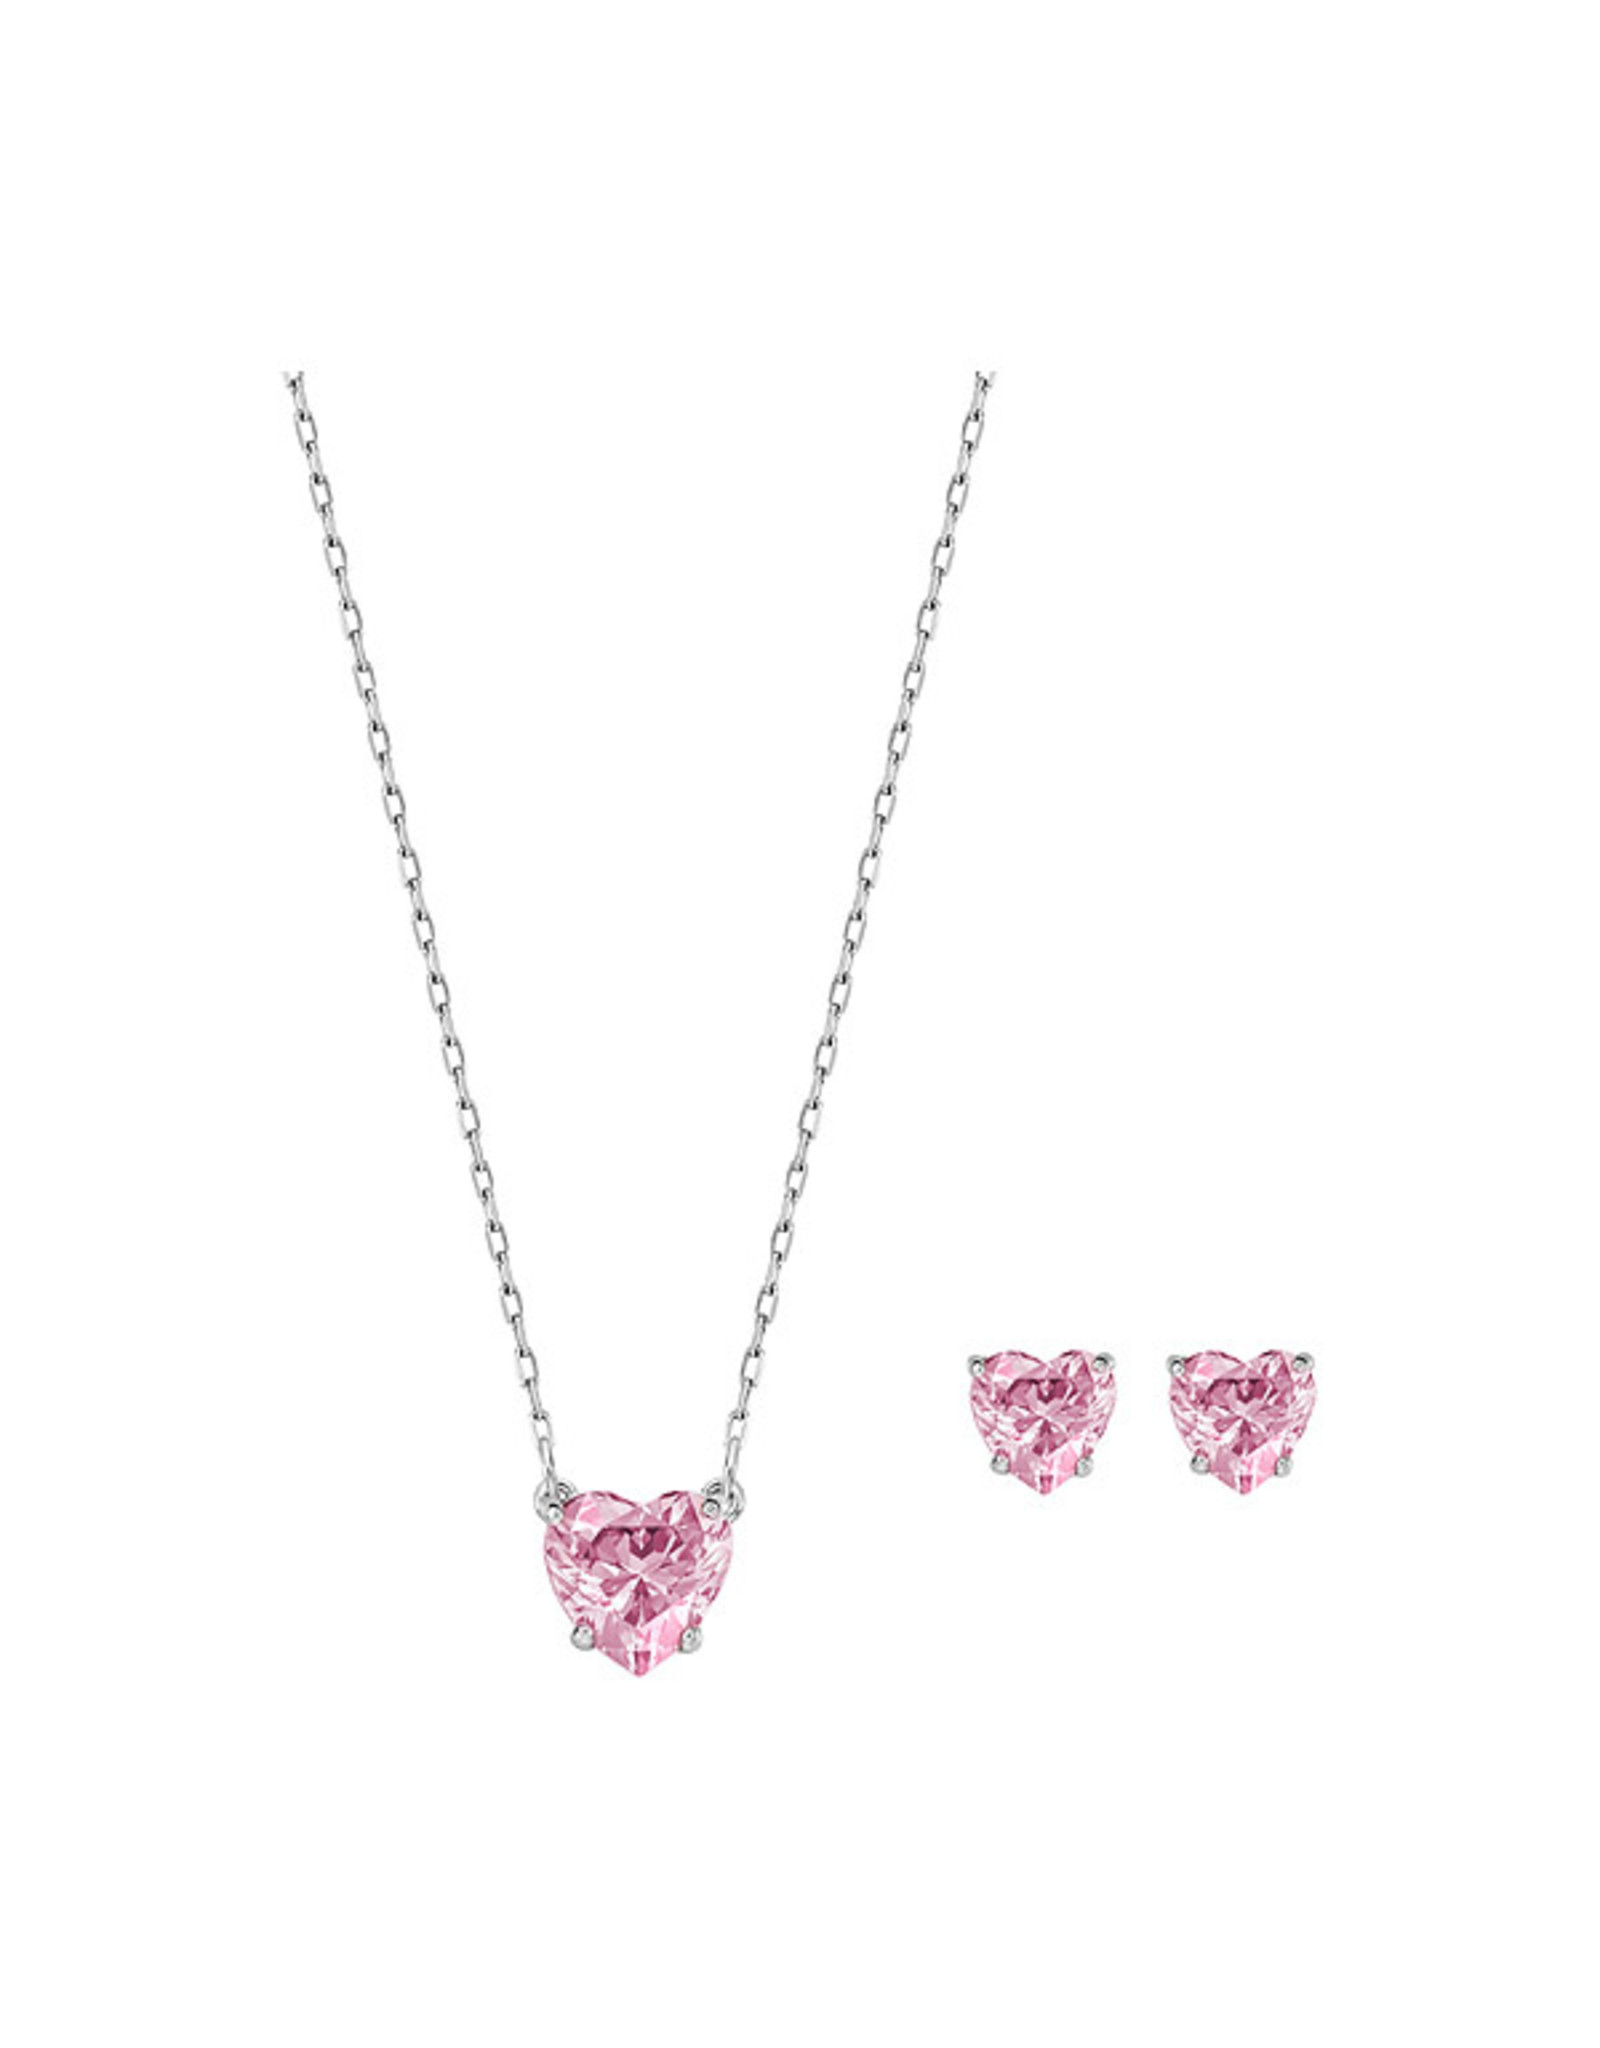 Swarovski Swarovski Attract Heart Necklace & Earrings Set